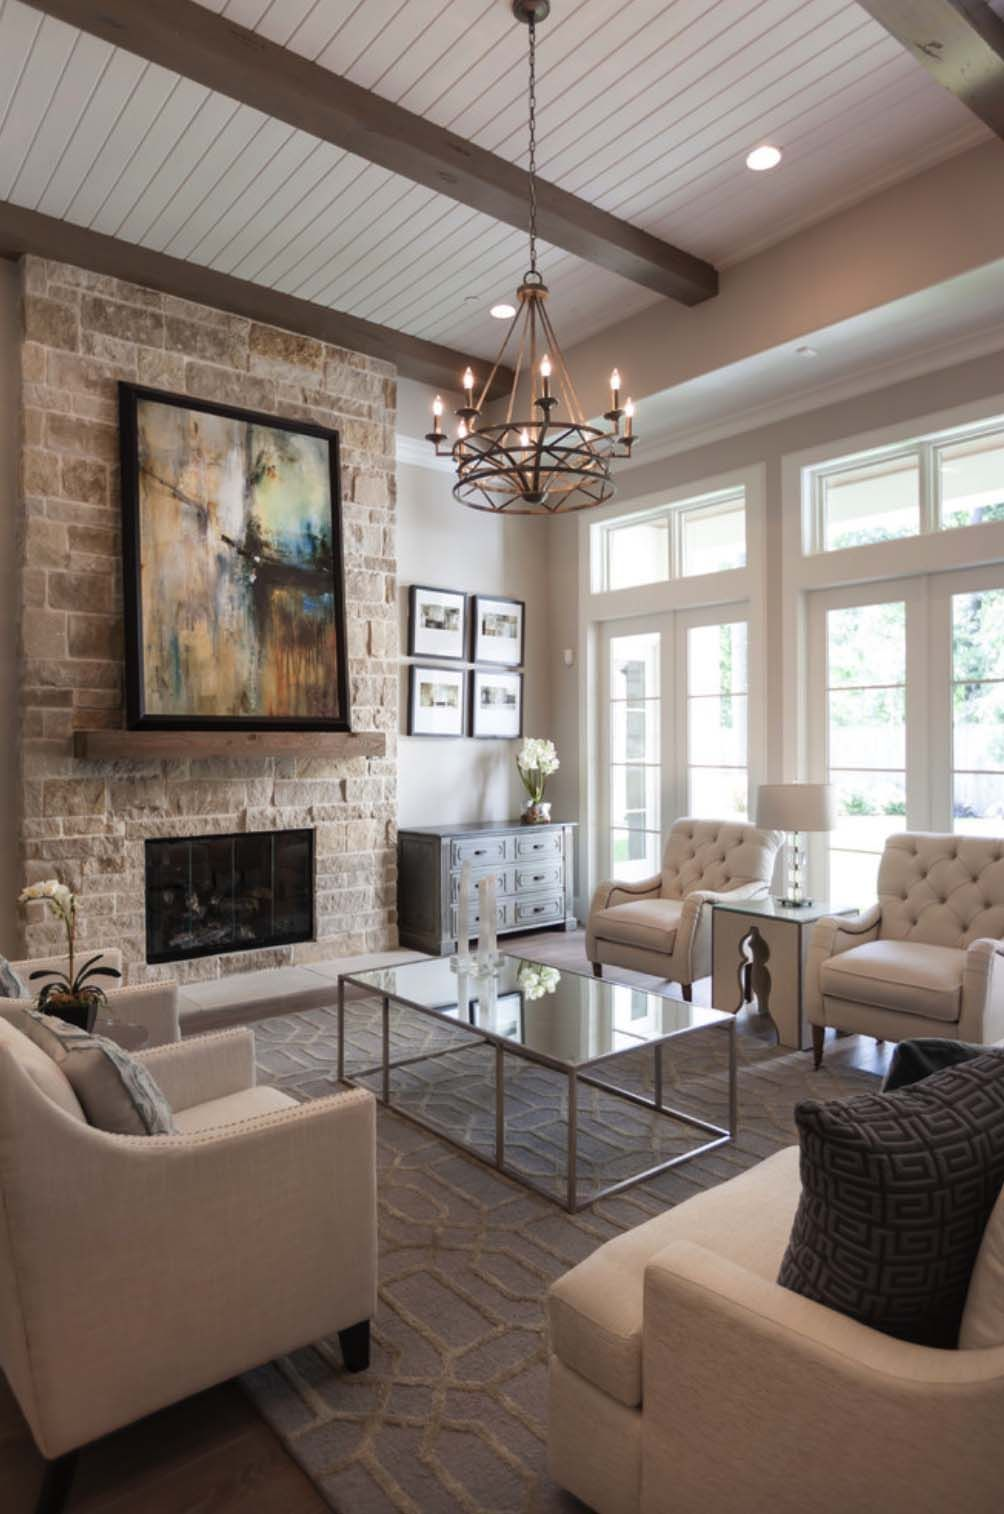 Transitional Interior Design Living Room: Gorgeous Woodlands Reserve Home Features Warm And Inviting